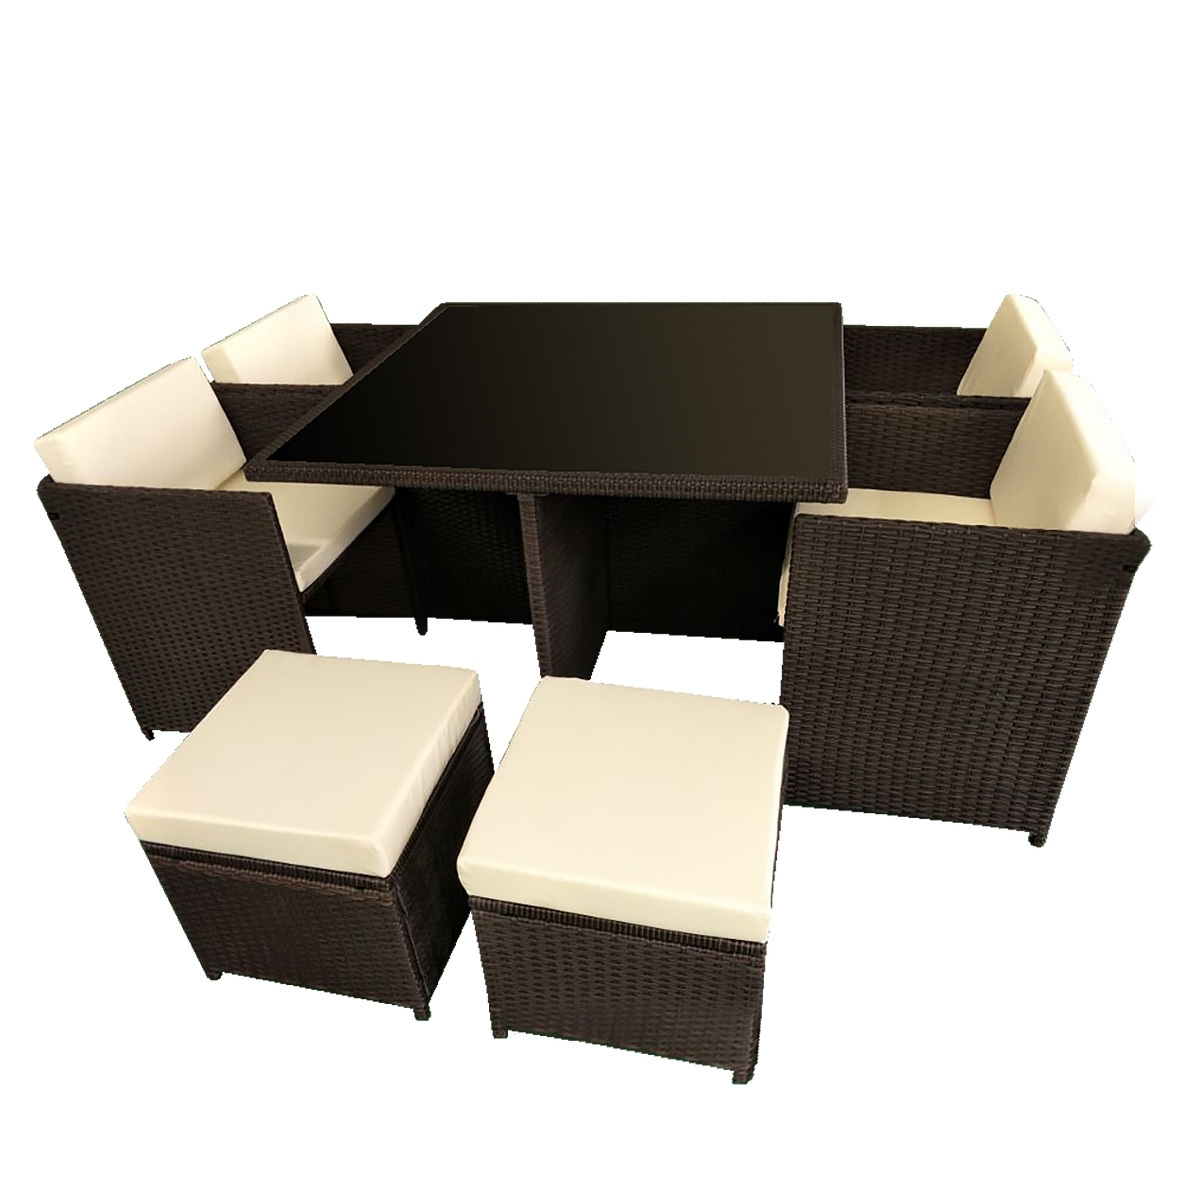 Widely Used 8 Seater Cube Outdoor Dining Table & Seat Set (View 19 of 25)